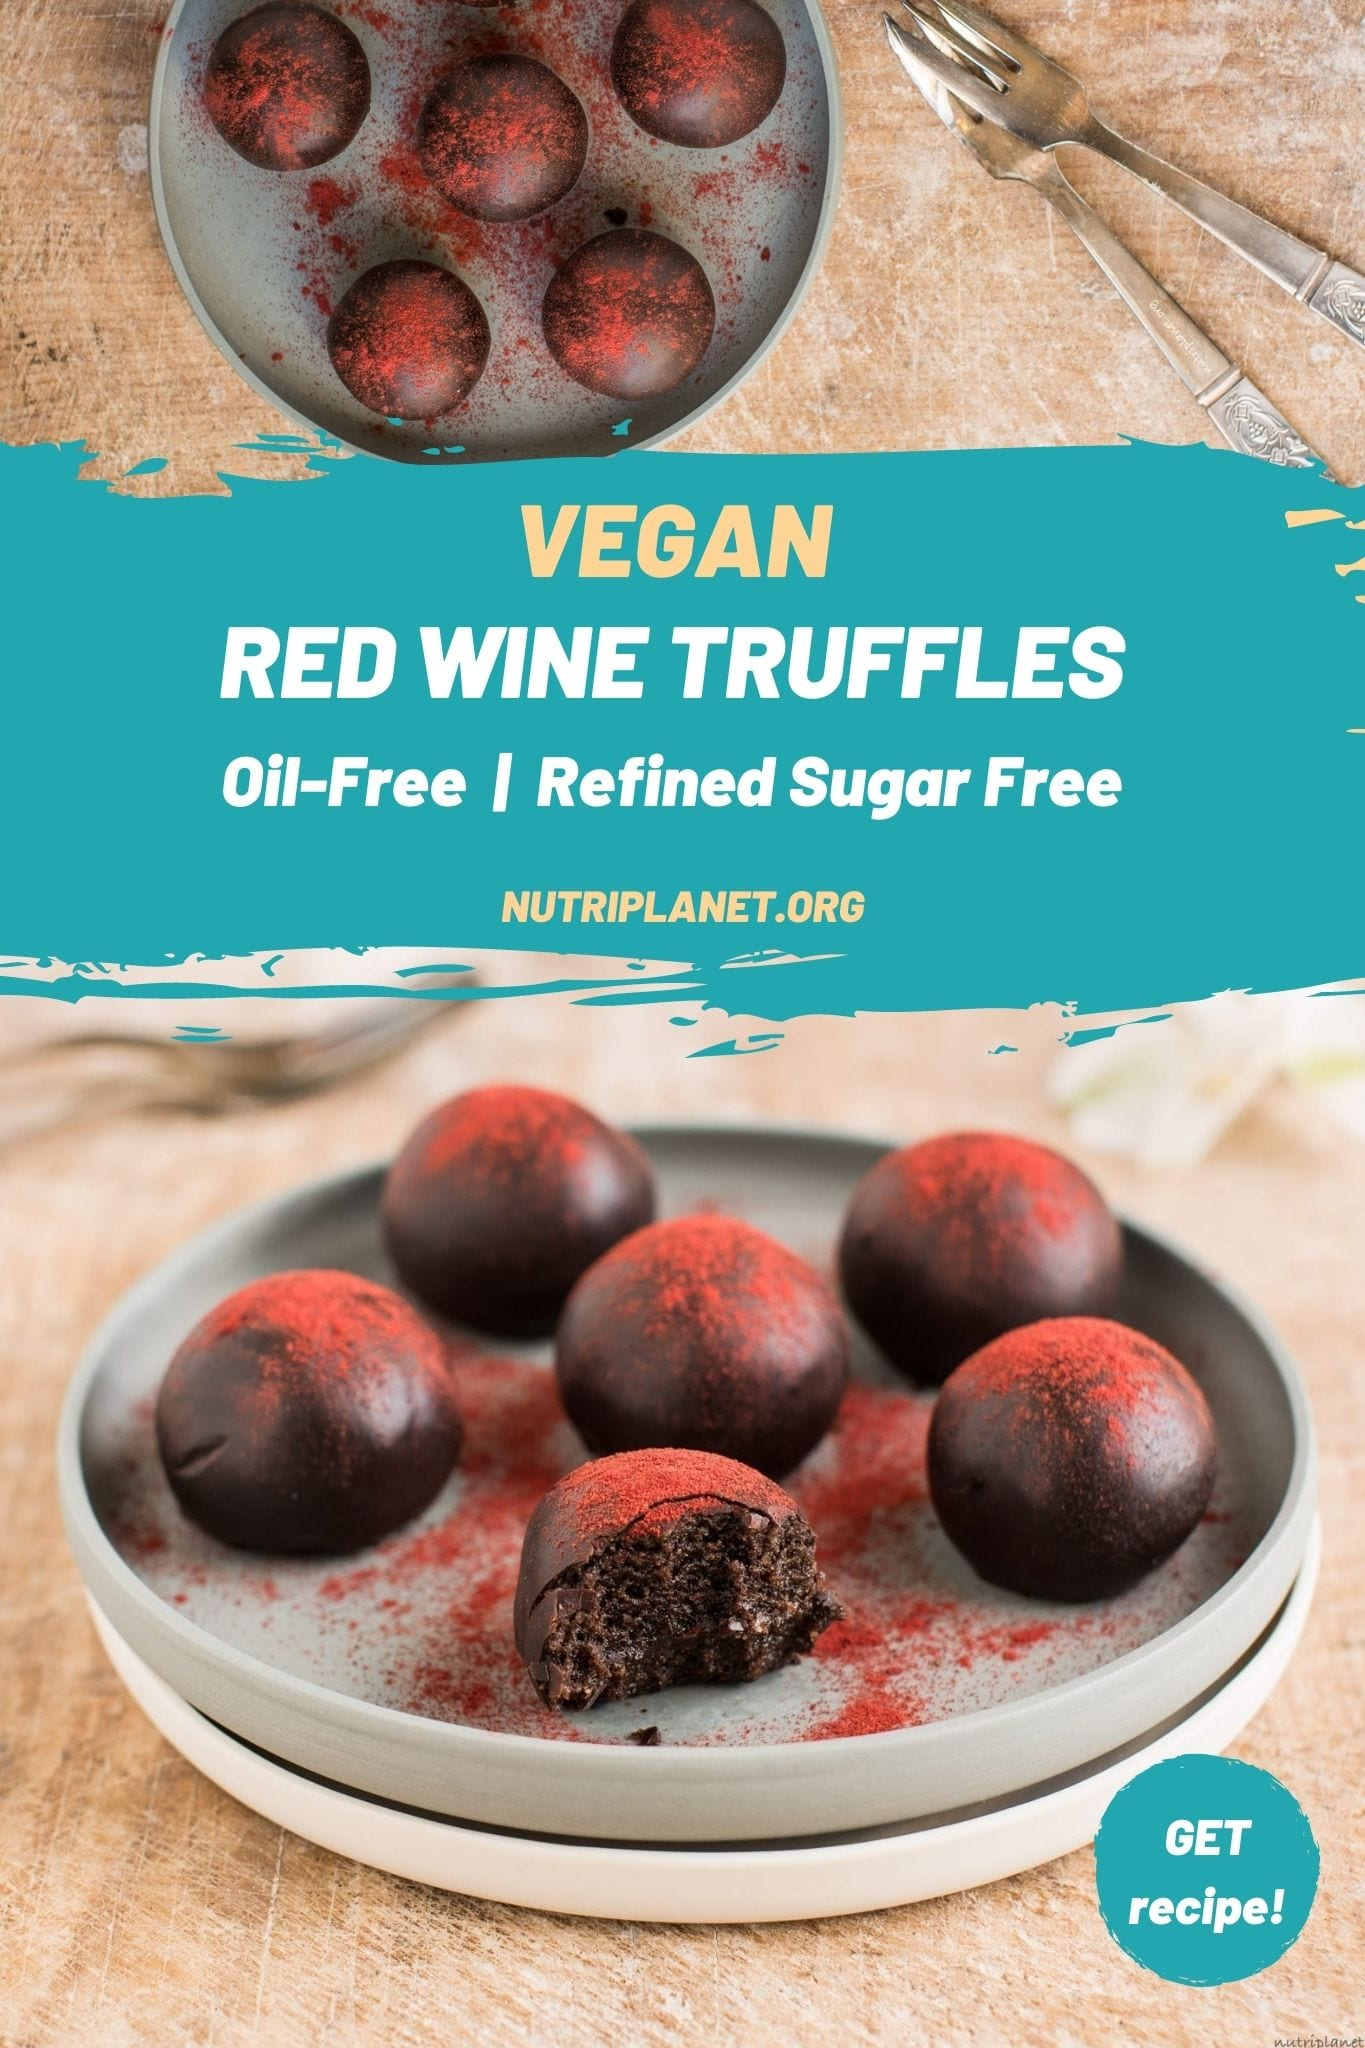 Those vegan truffles with red wine make a decadent chocolate treat for any special occasion.